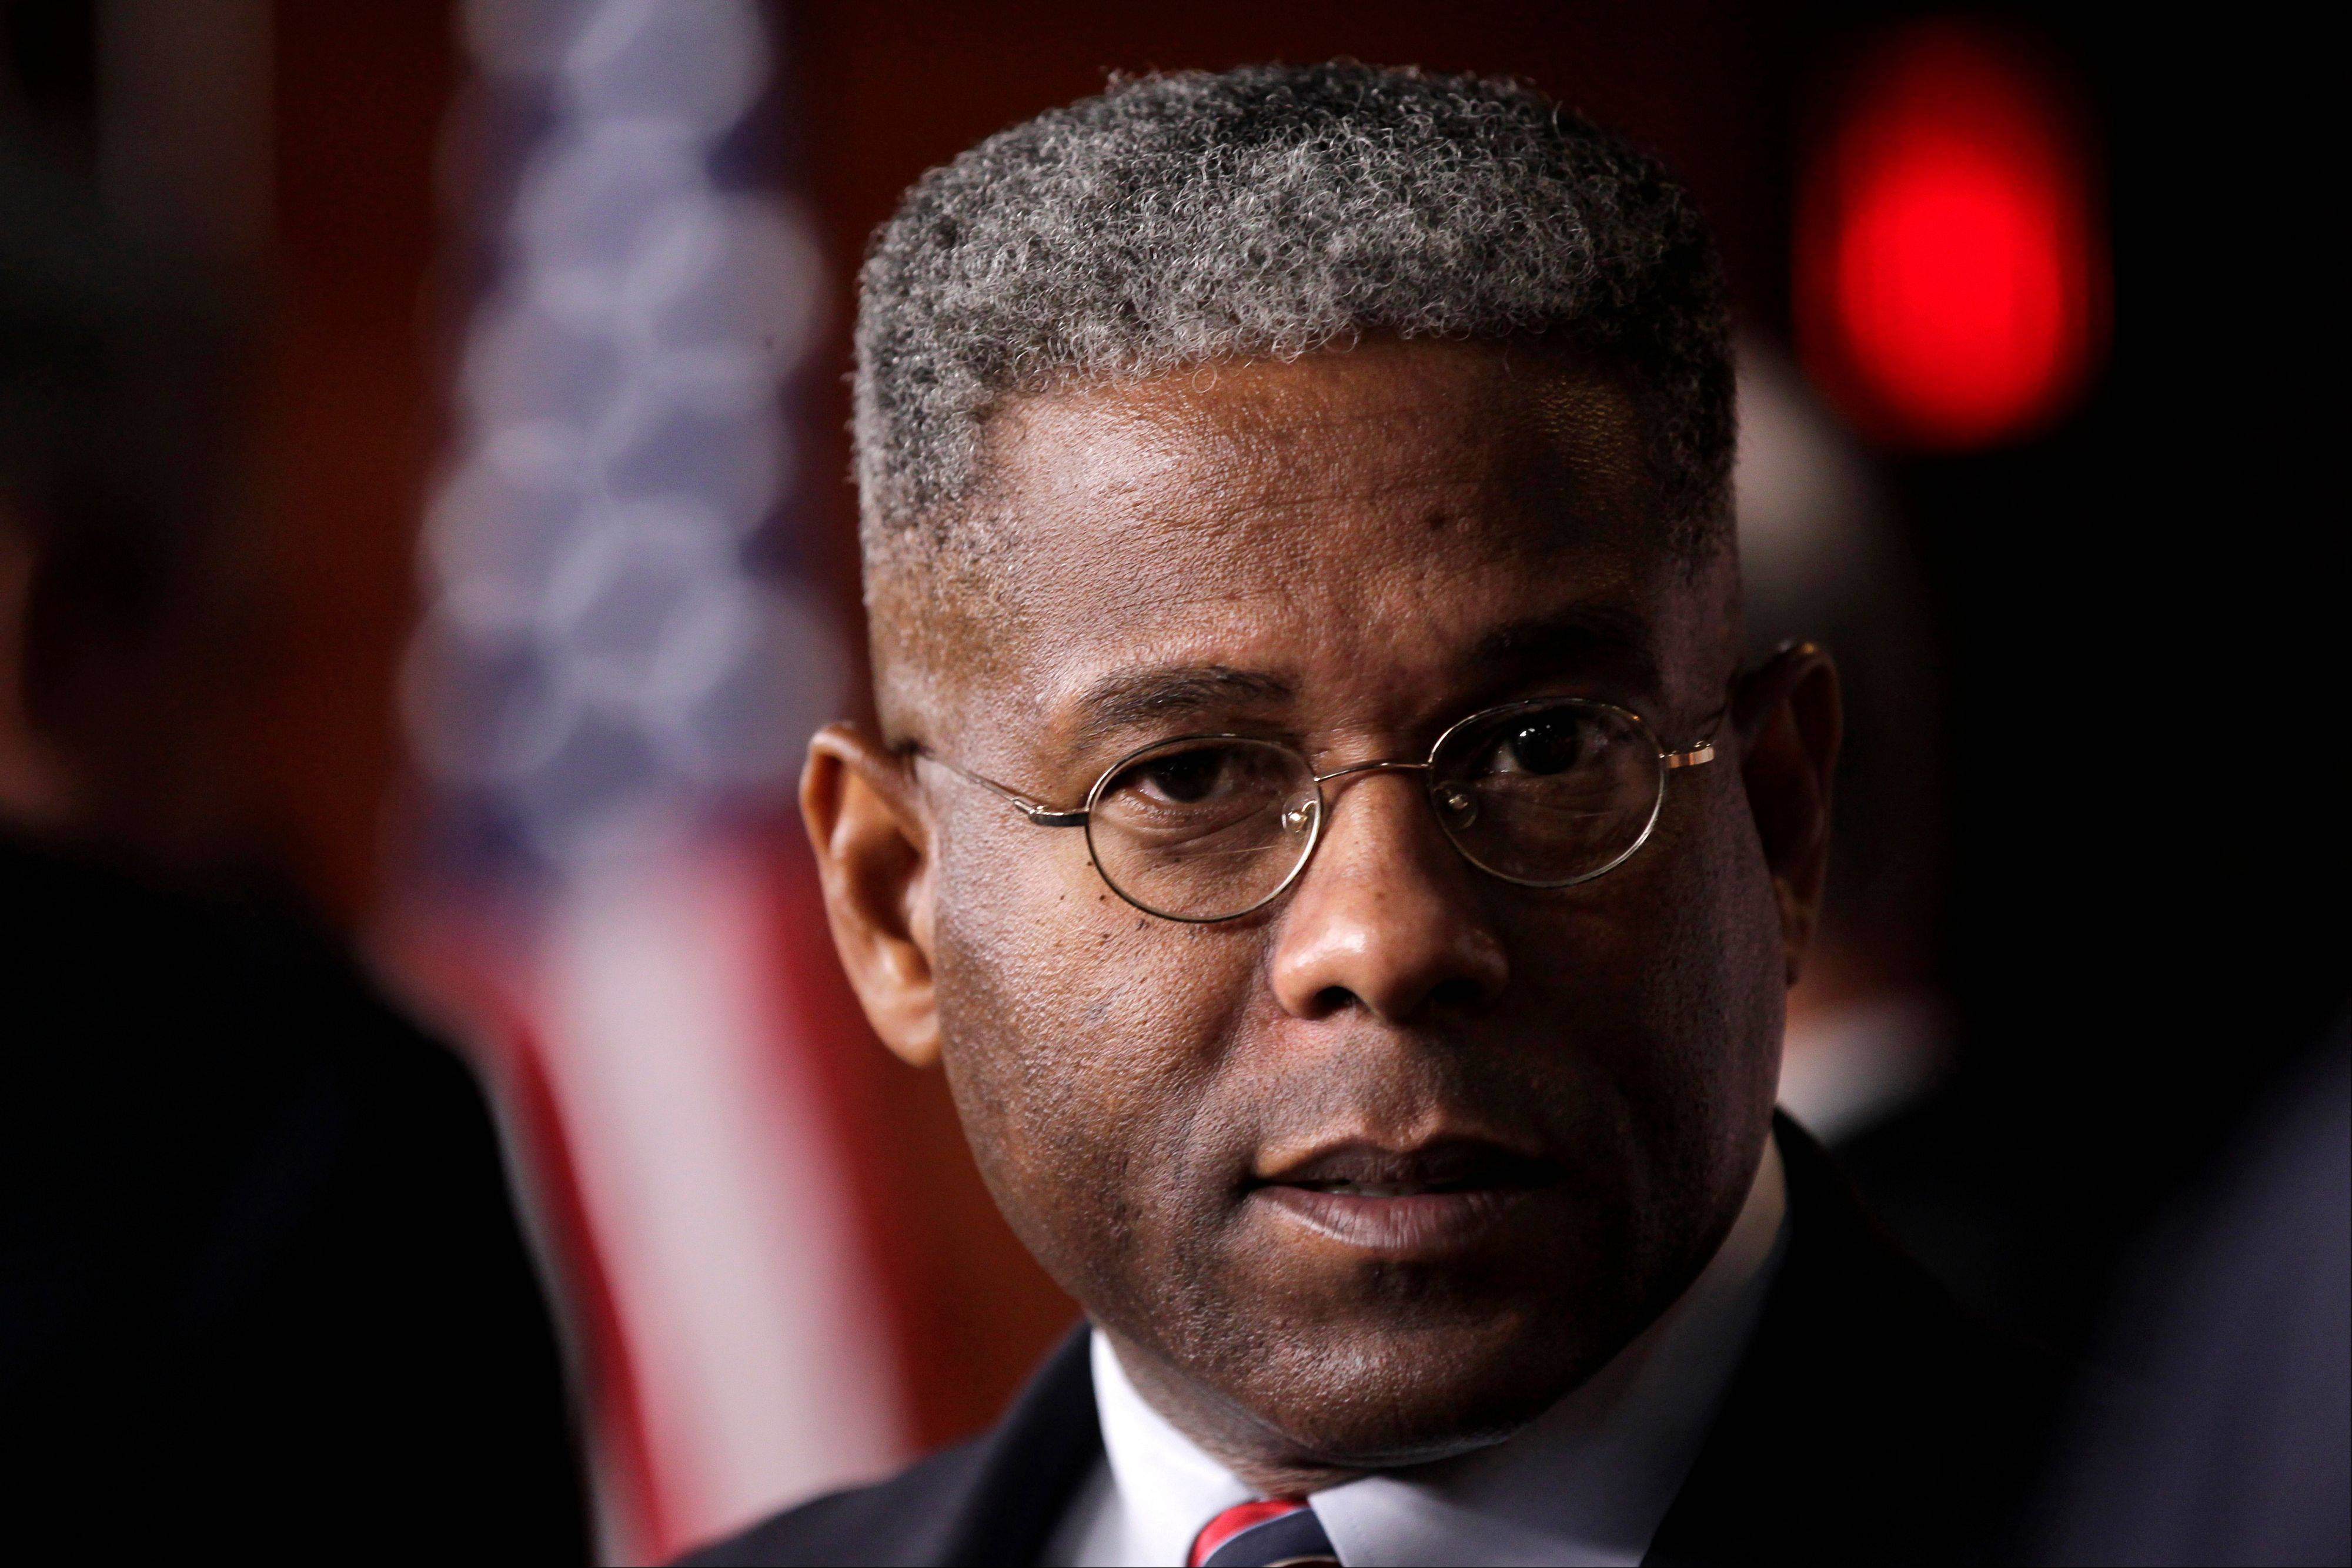 Rep. Allen West, a Florida Republican, agreed with former GE CEO Jack Welch's skepticism of the Labor Department's announcement that the unemployment rate had fallen to 7.8 percent in September from 8.1 percent the month before.